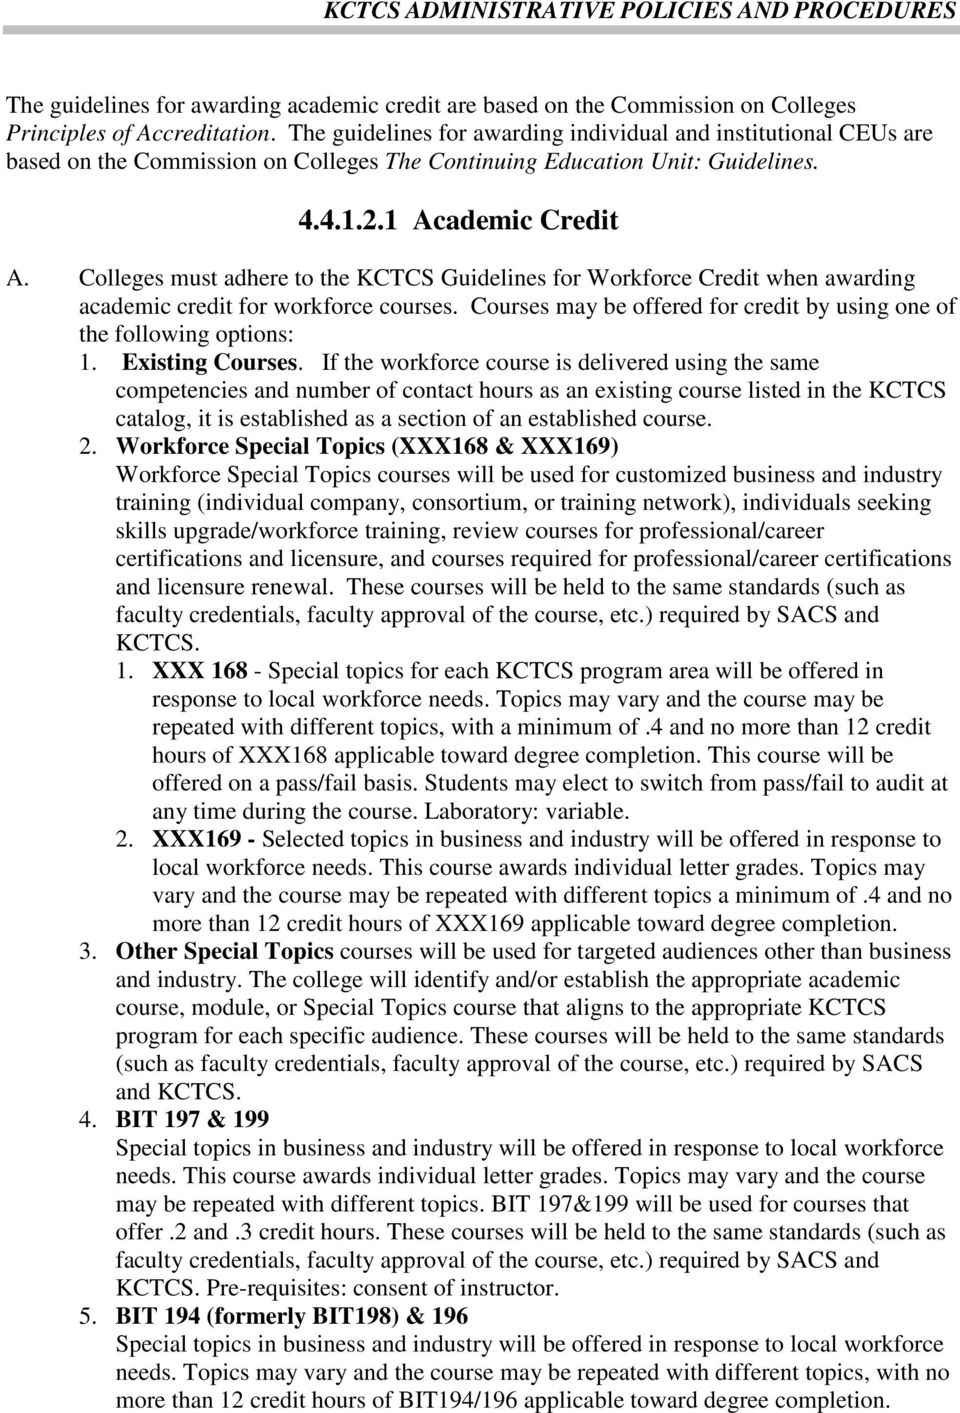 Colleges must adhere to the KCTCS Guidelines for Workforce Credit when awarding academic credit for workforce courses. Courses may be offered for credit by using one of the following options: 1.